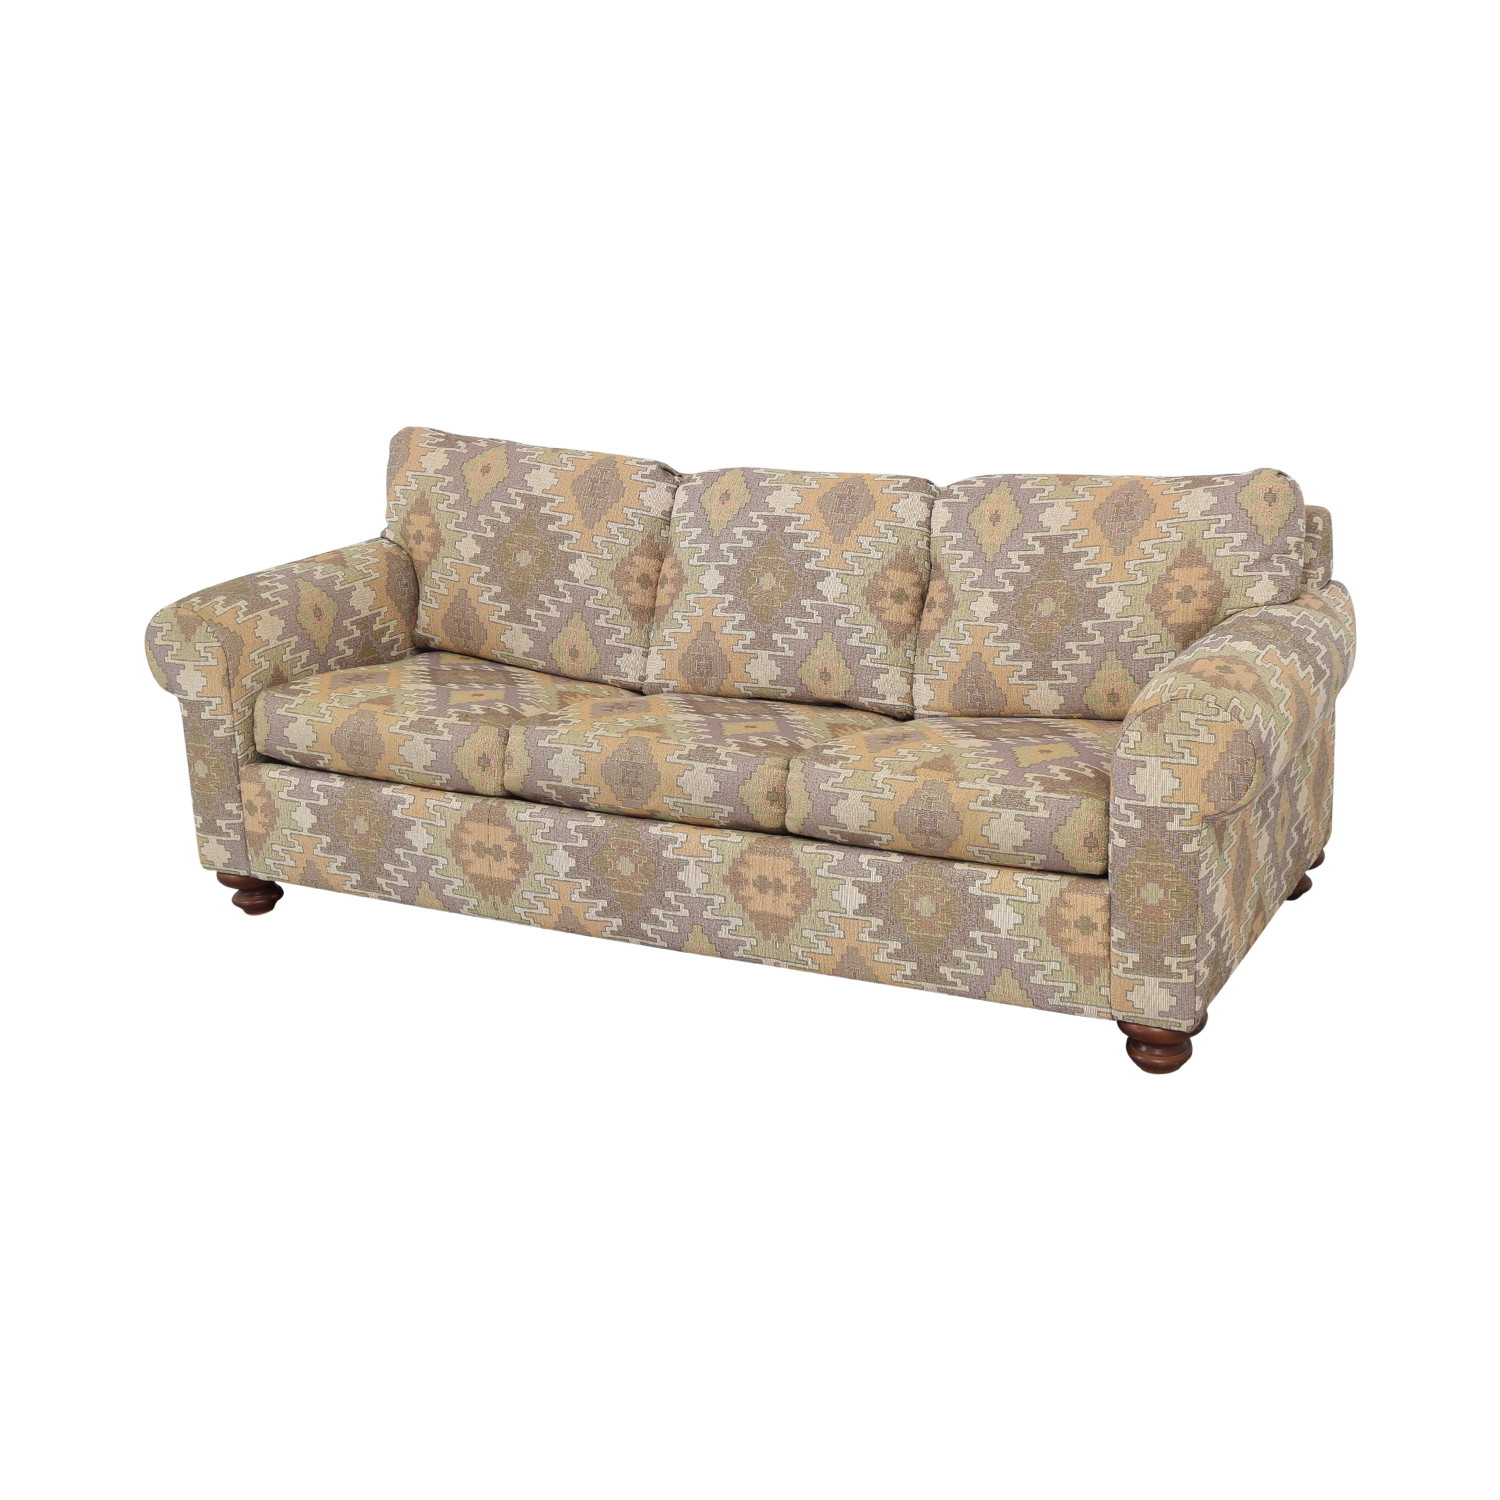 Cerrito Cerrito's Queen Sleeper Sofa used